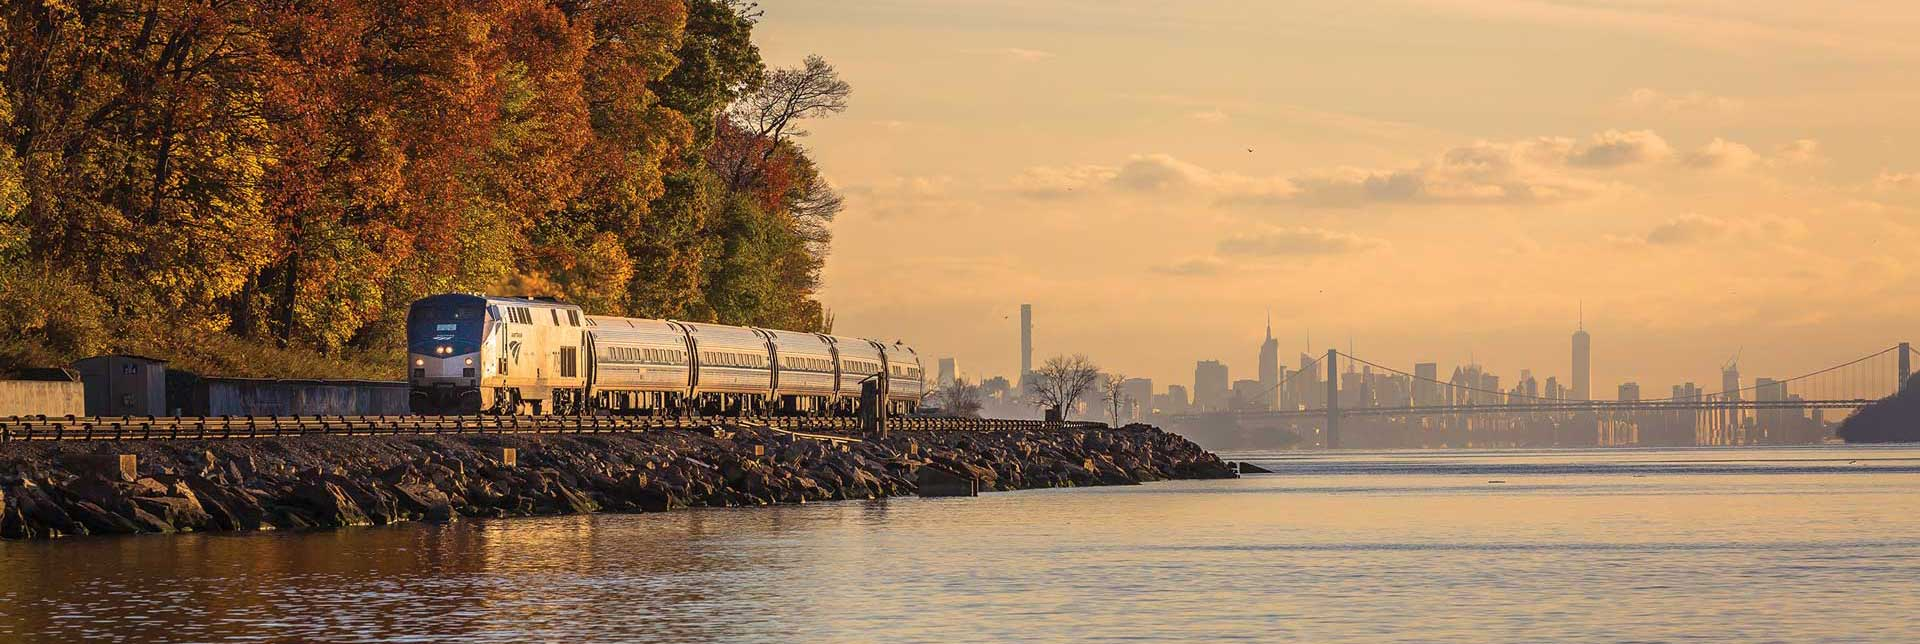 Amtrak Travel Packages